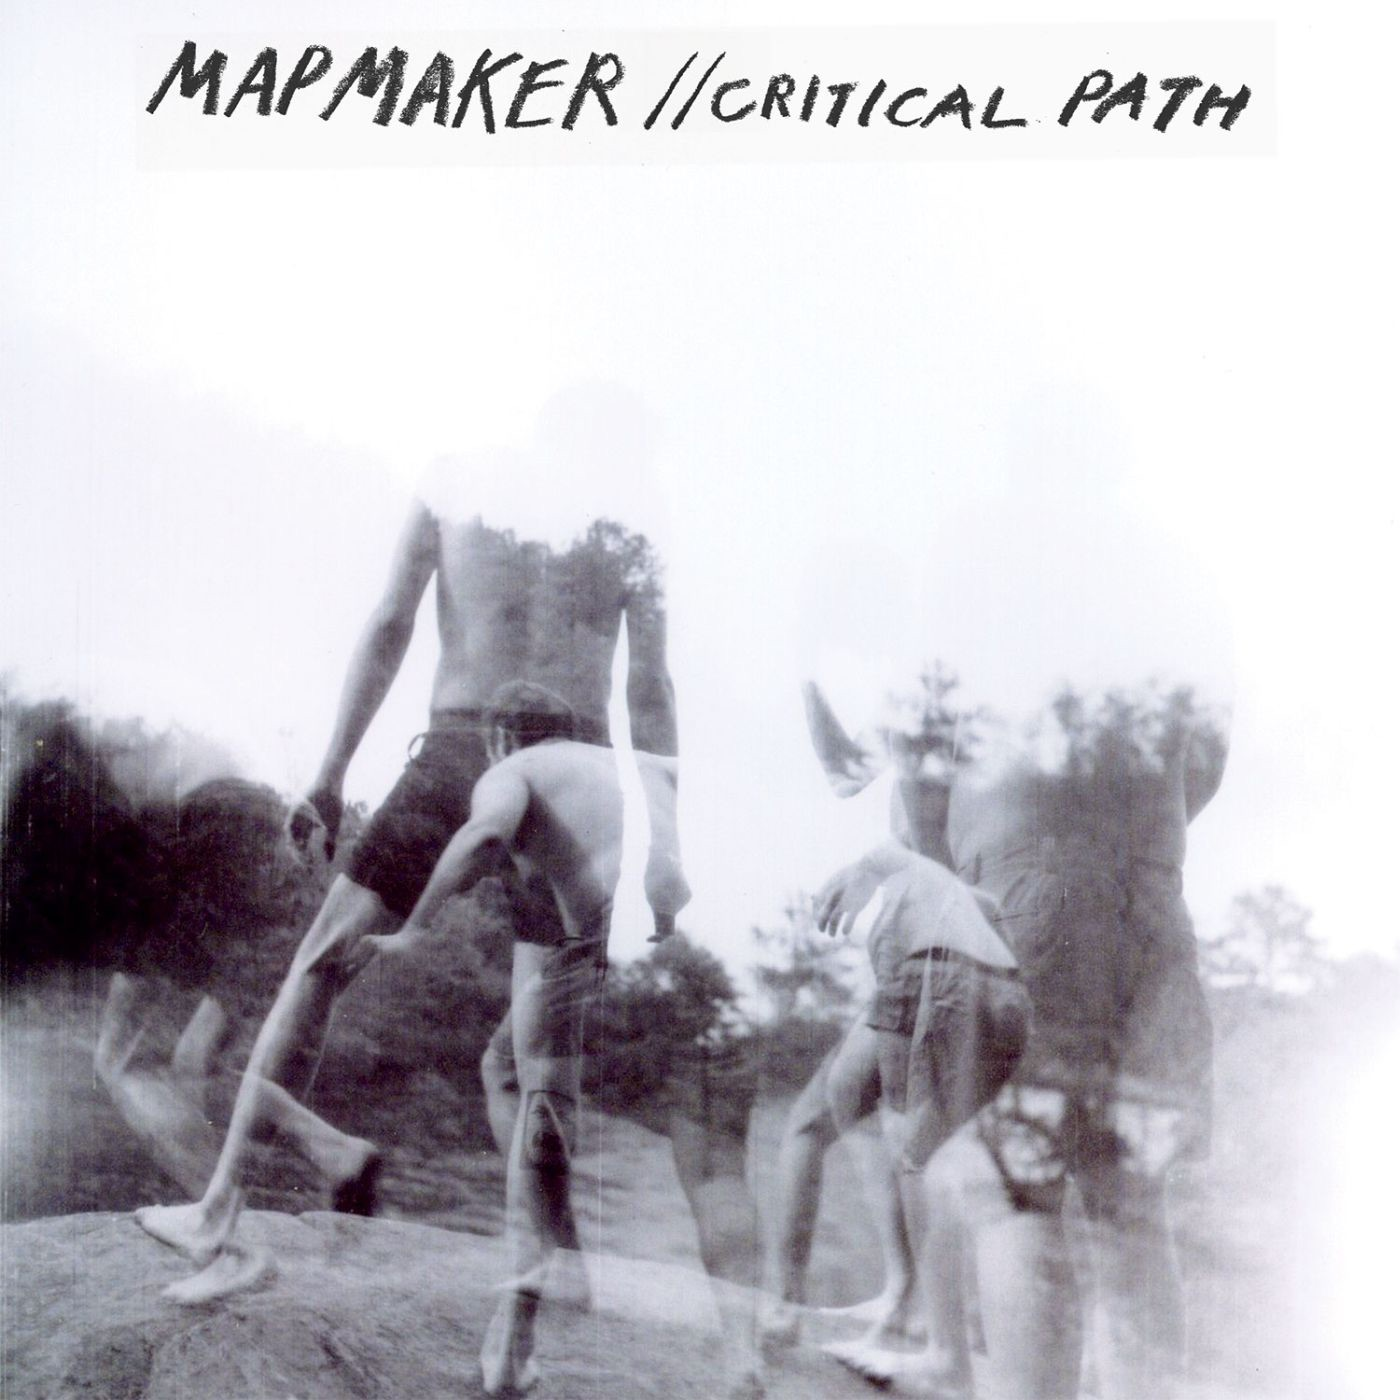 MP3 Songs Online:♫ Hate Your Home Town - Mapmaker album Critical Path. Rock,Music,Alternative listen to music online free without downloading.